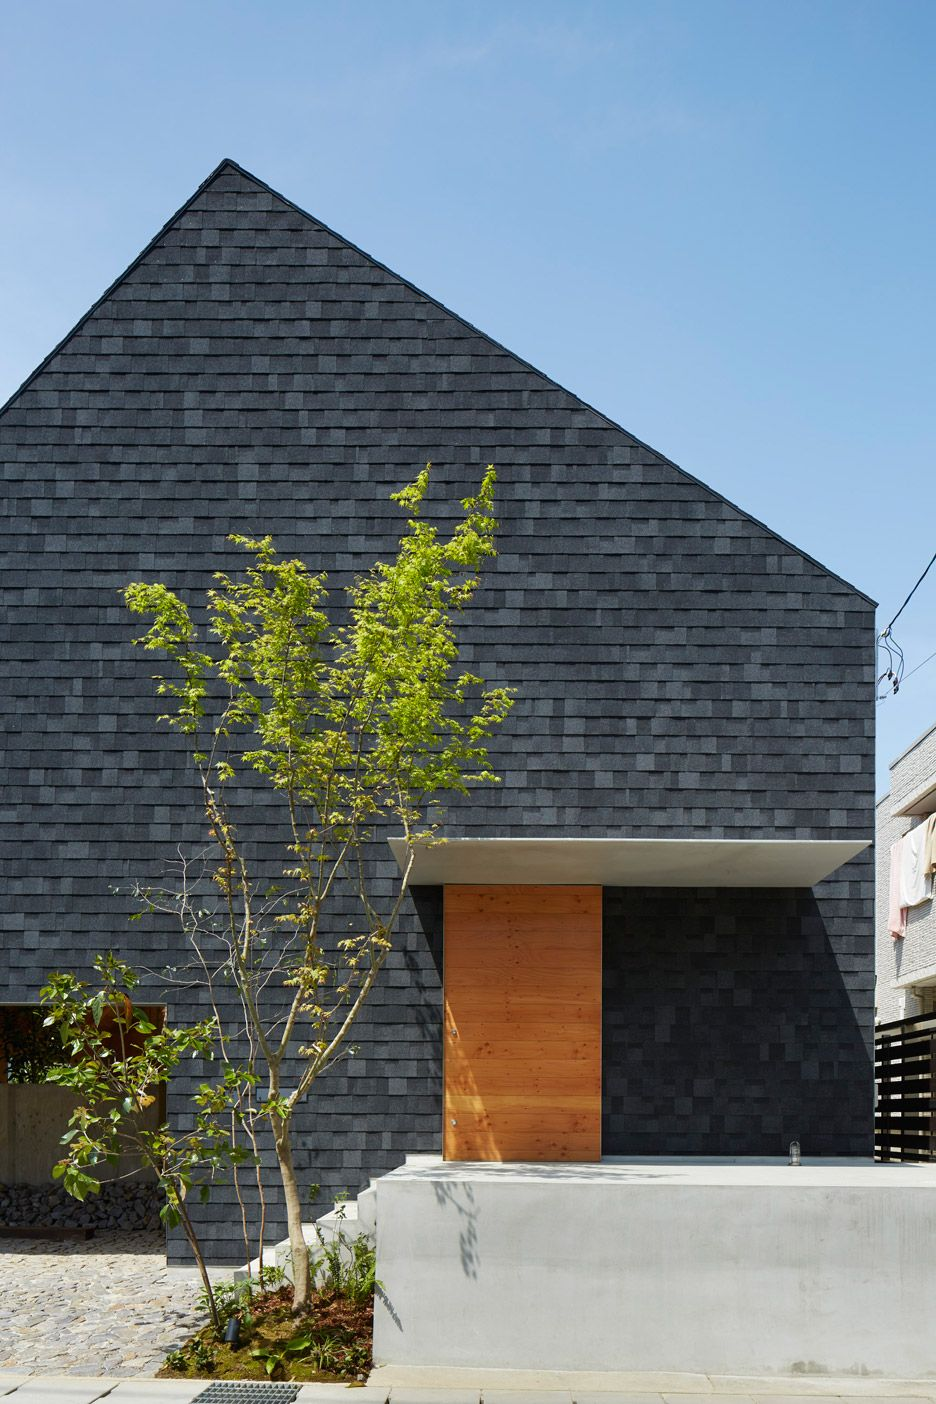 A Pointy Shingle Clad Roof Extends Over This Residence And